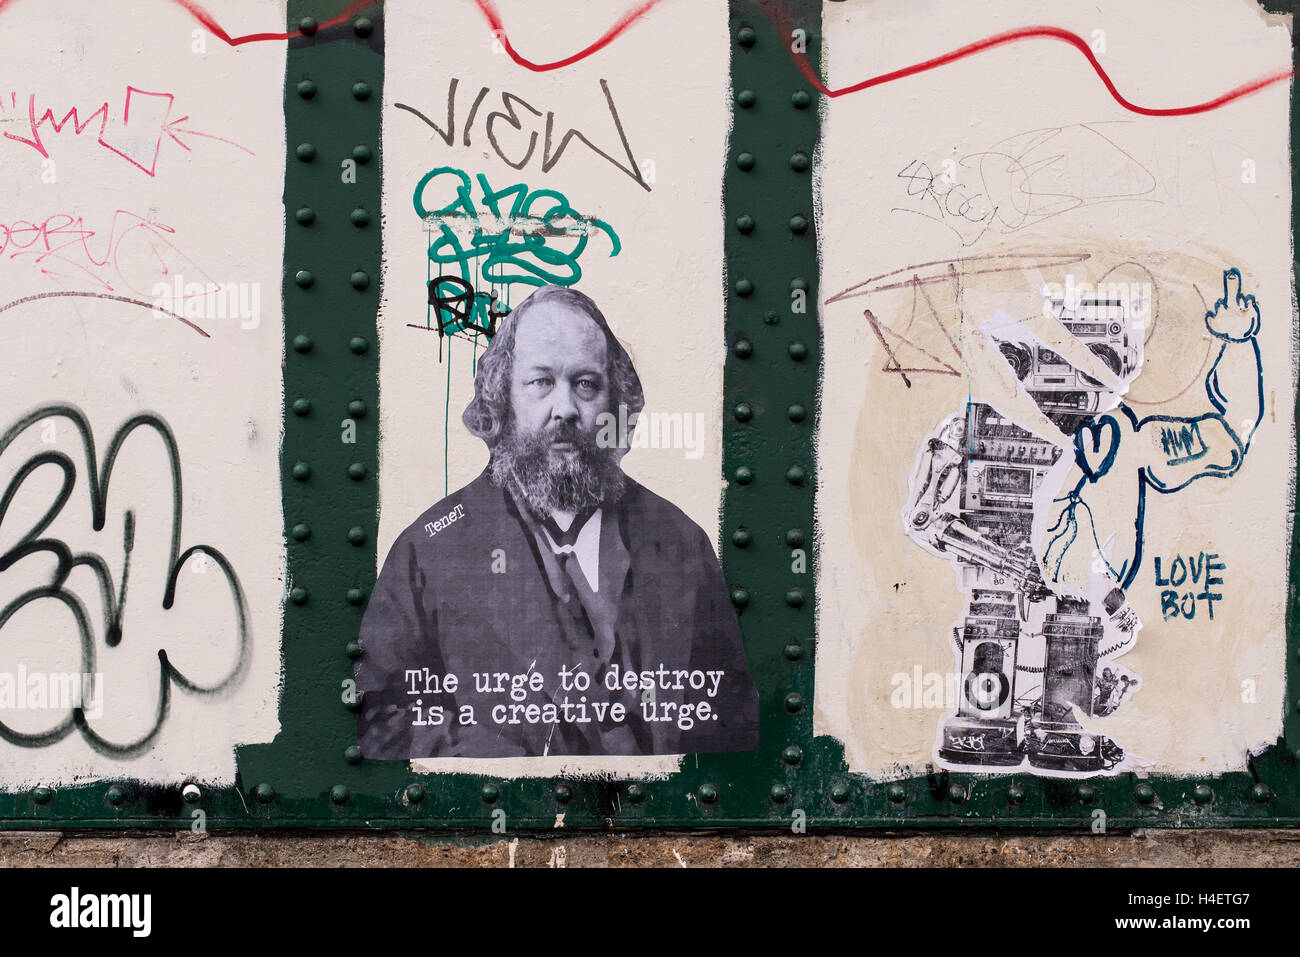 Sticker on a wall representing Mikhail Bakunin and the quote 'The urge to destroy is a creative urge' printed - Stock Image